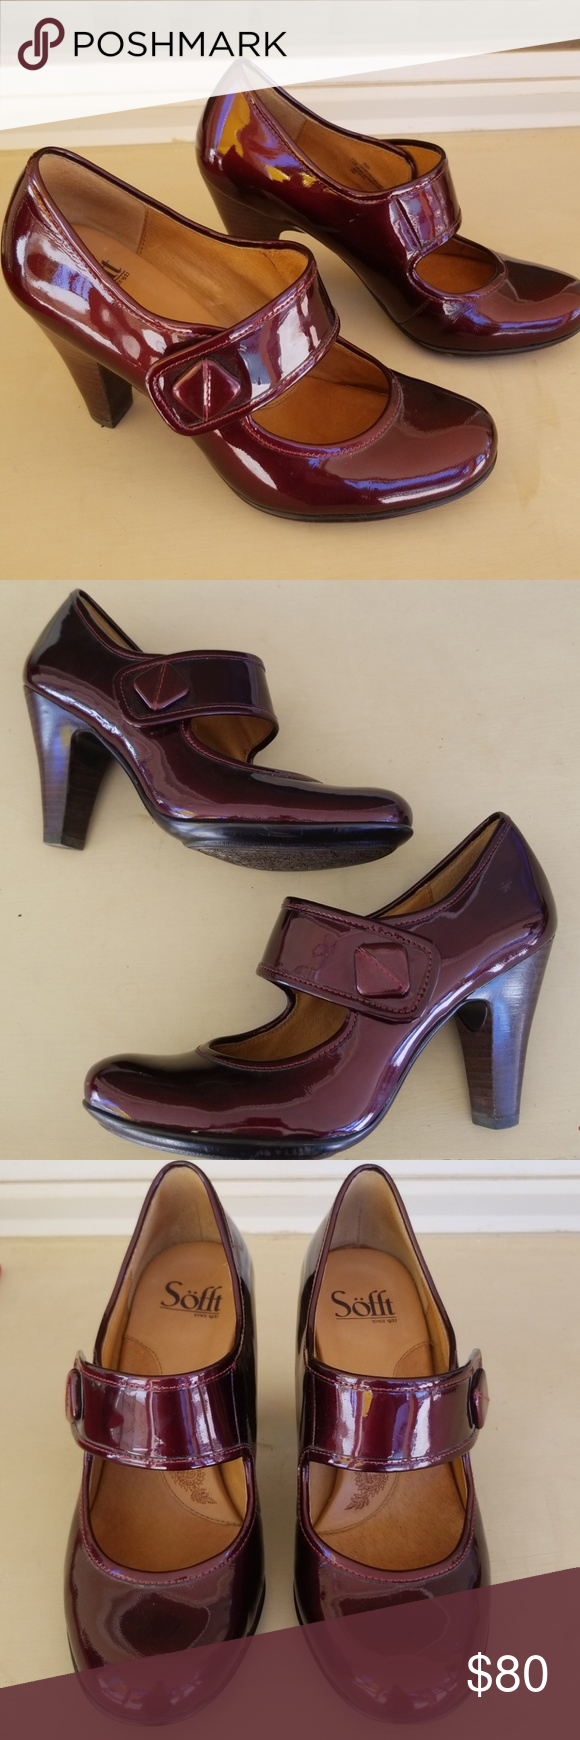 Sofft wine patent sandals